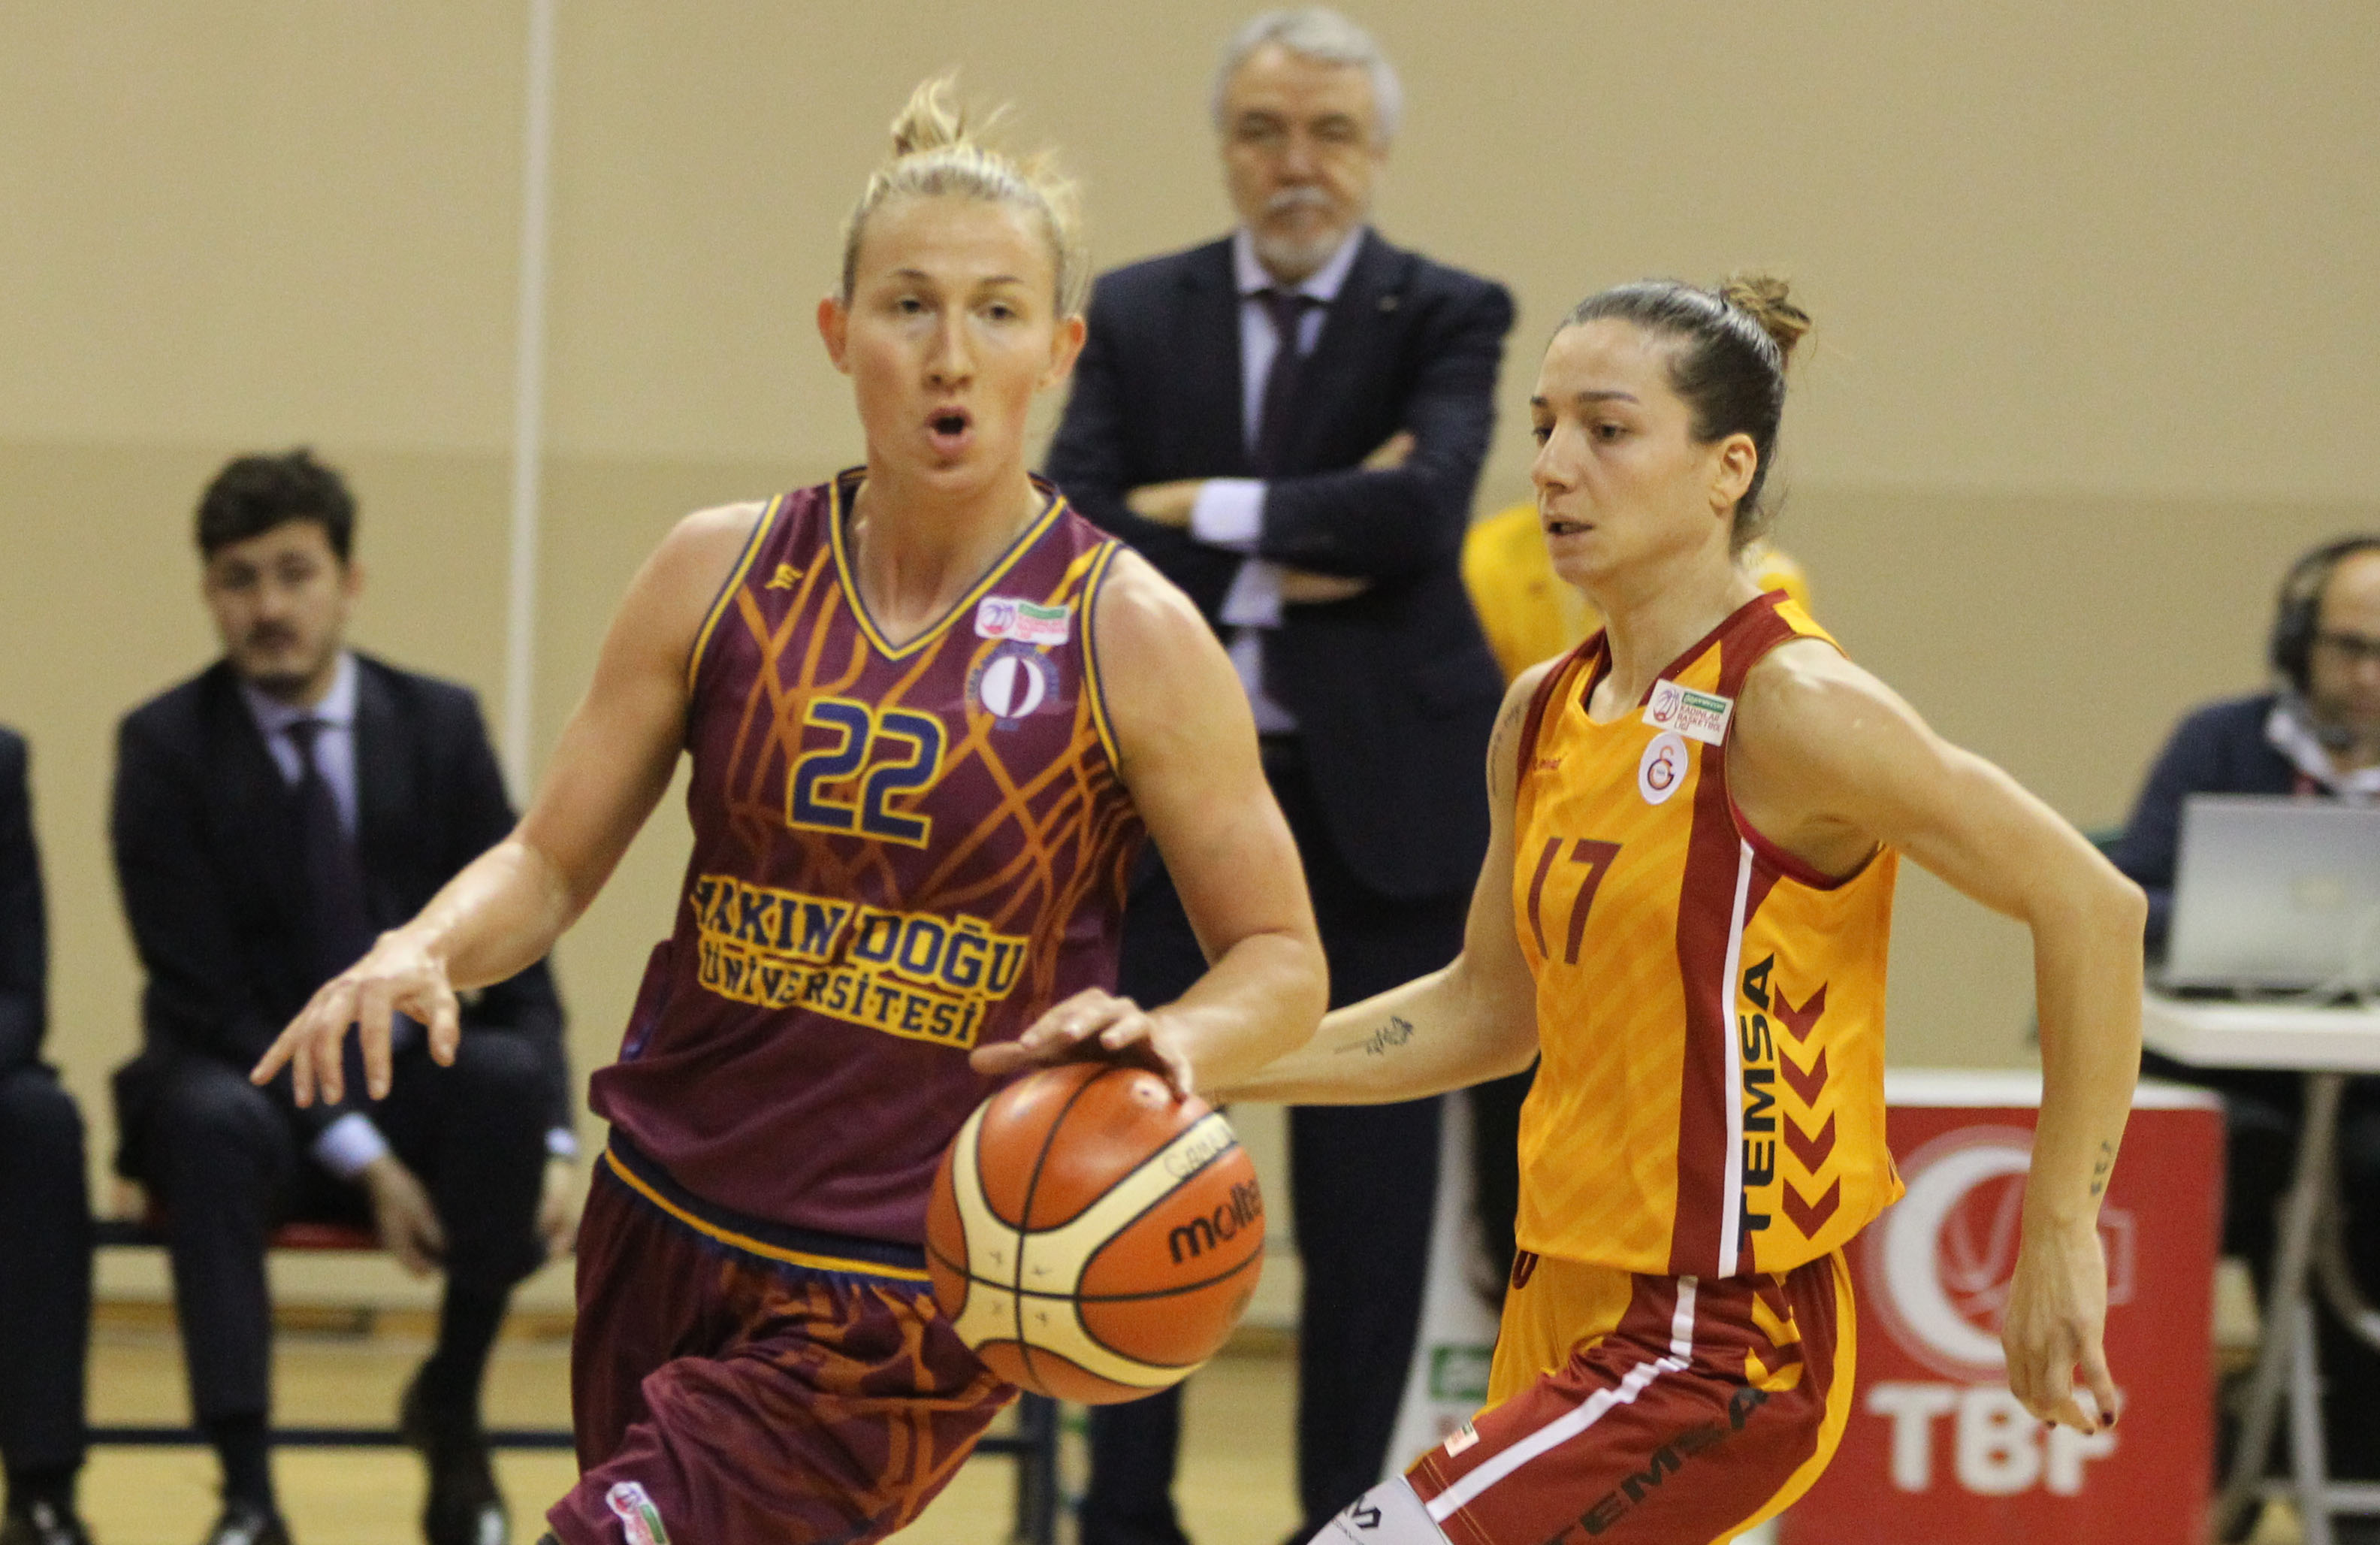 Near East University continues to defeat Galatasaray … Galatasaray: 71- Near East University: 77